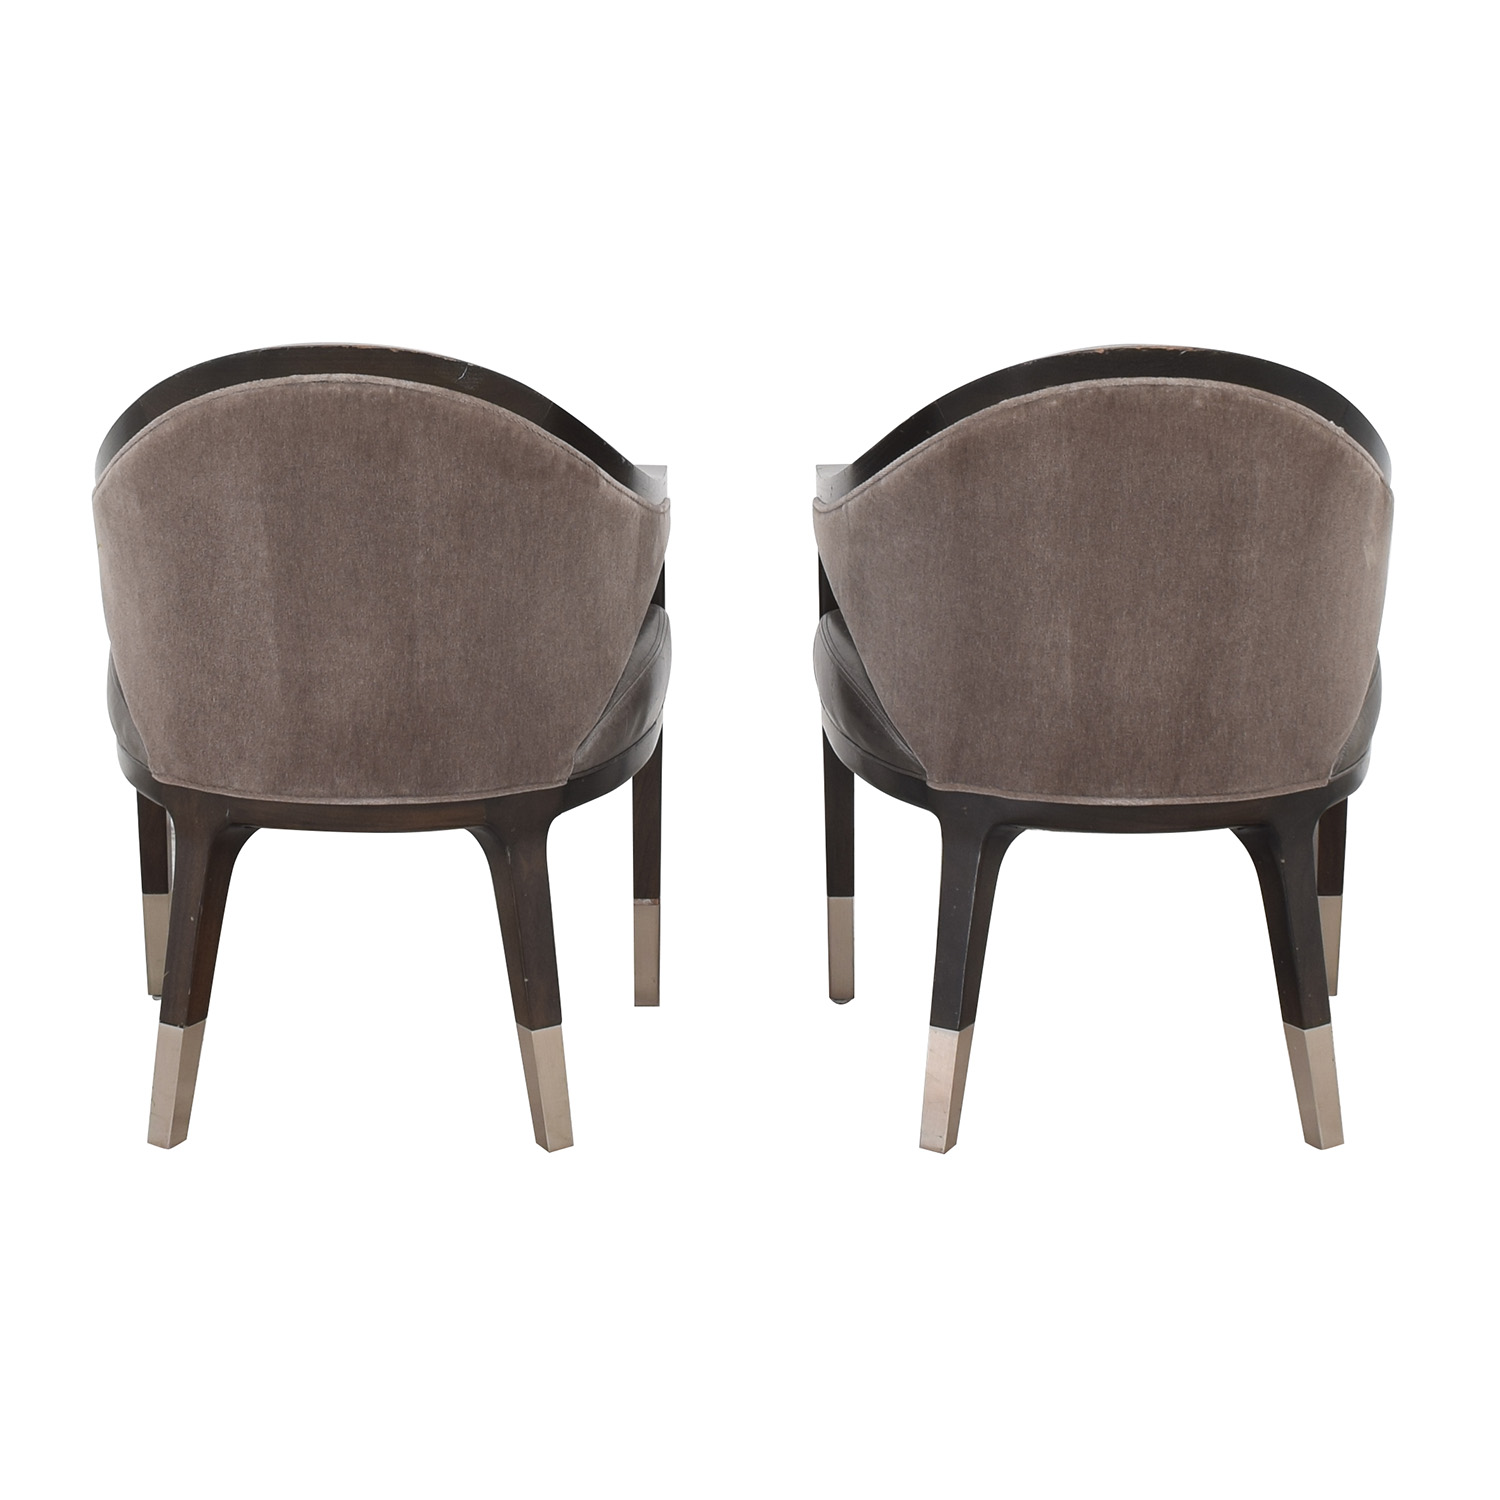 Allied Form Works Allied Works Eleven Madison Park Dining Room Chairs for sale